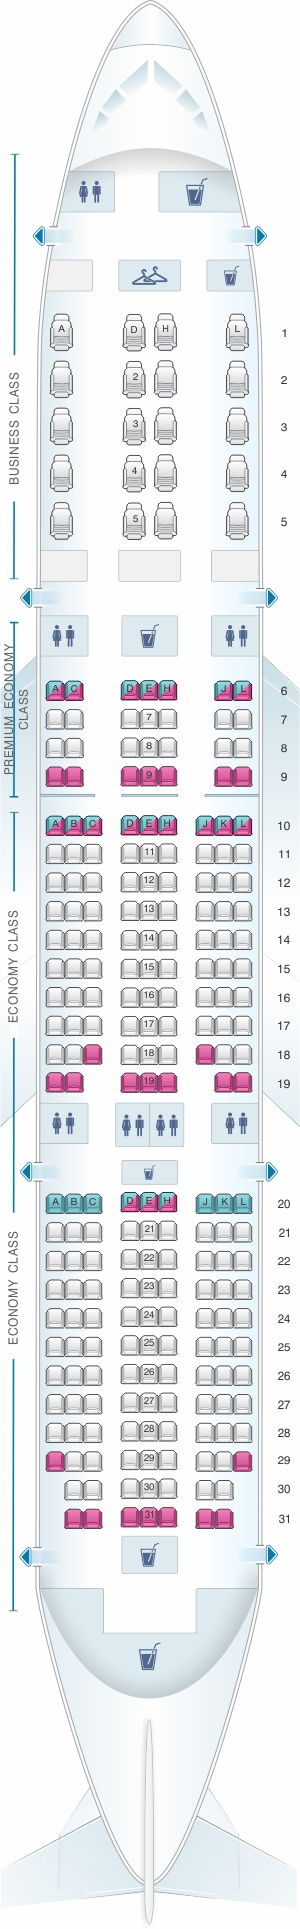 Seat map for American Airlines Boeing B787-8 config.2